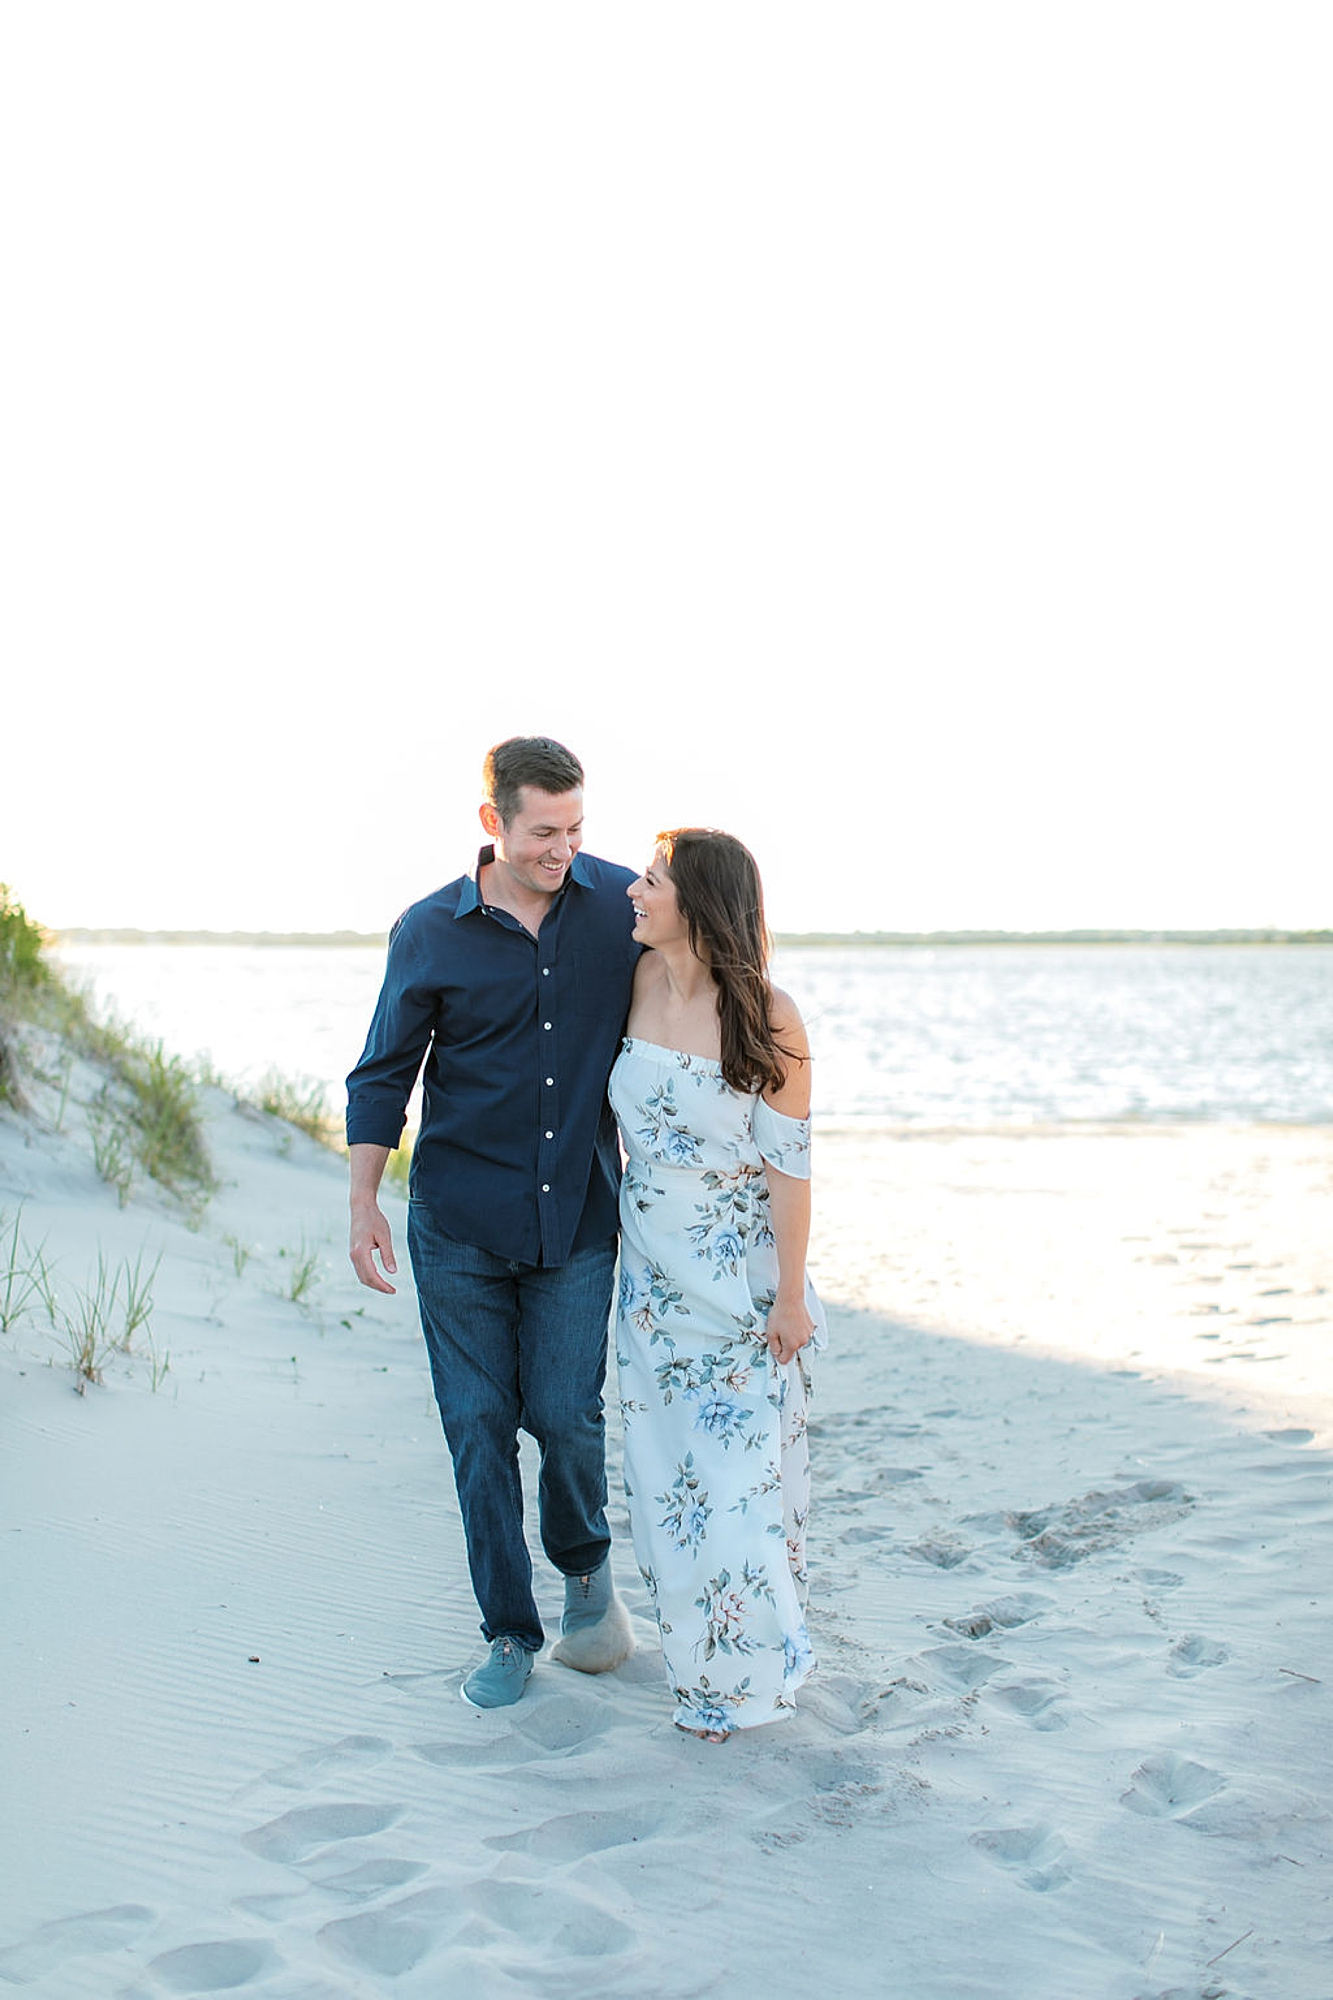 Film Engagement Session Photography in Ocean City NJ by Magdalena Studios 0036